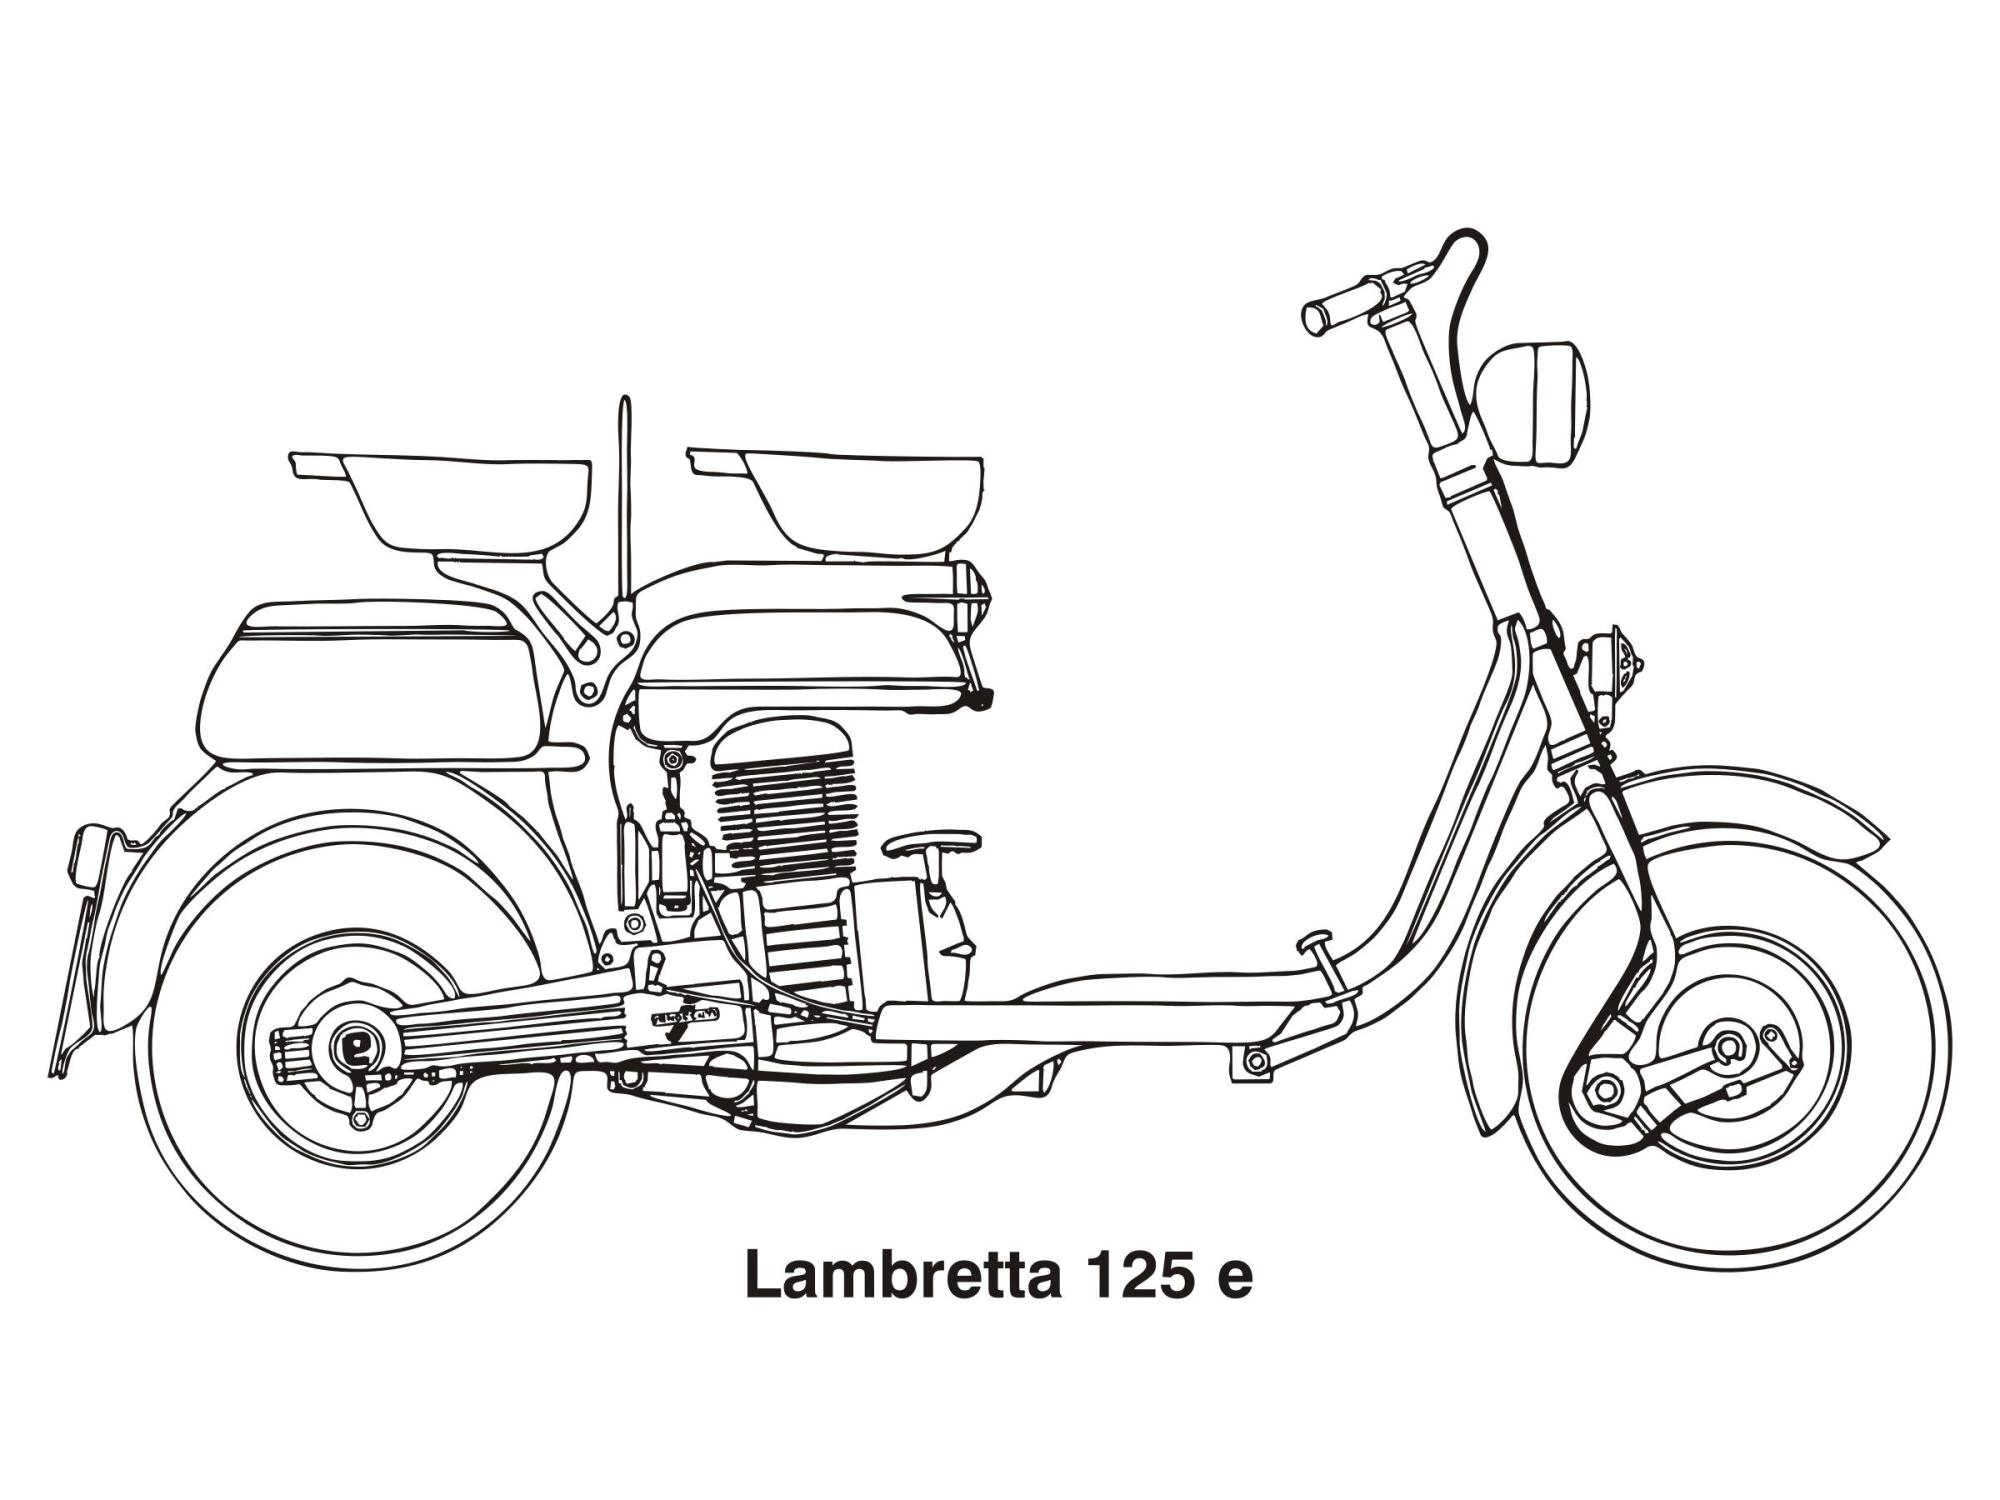 hight resolution of lambretta 125 e year 1953 clipart